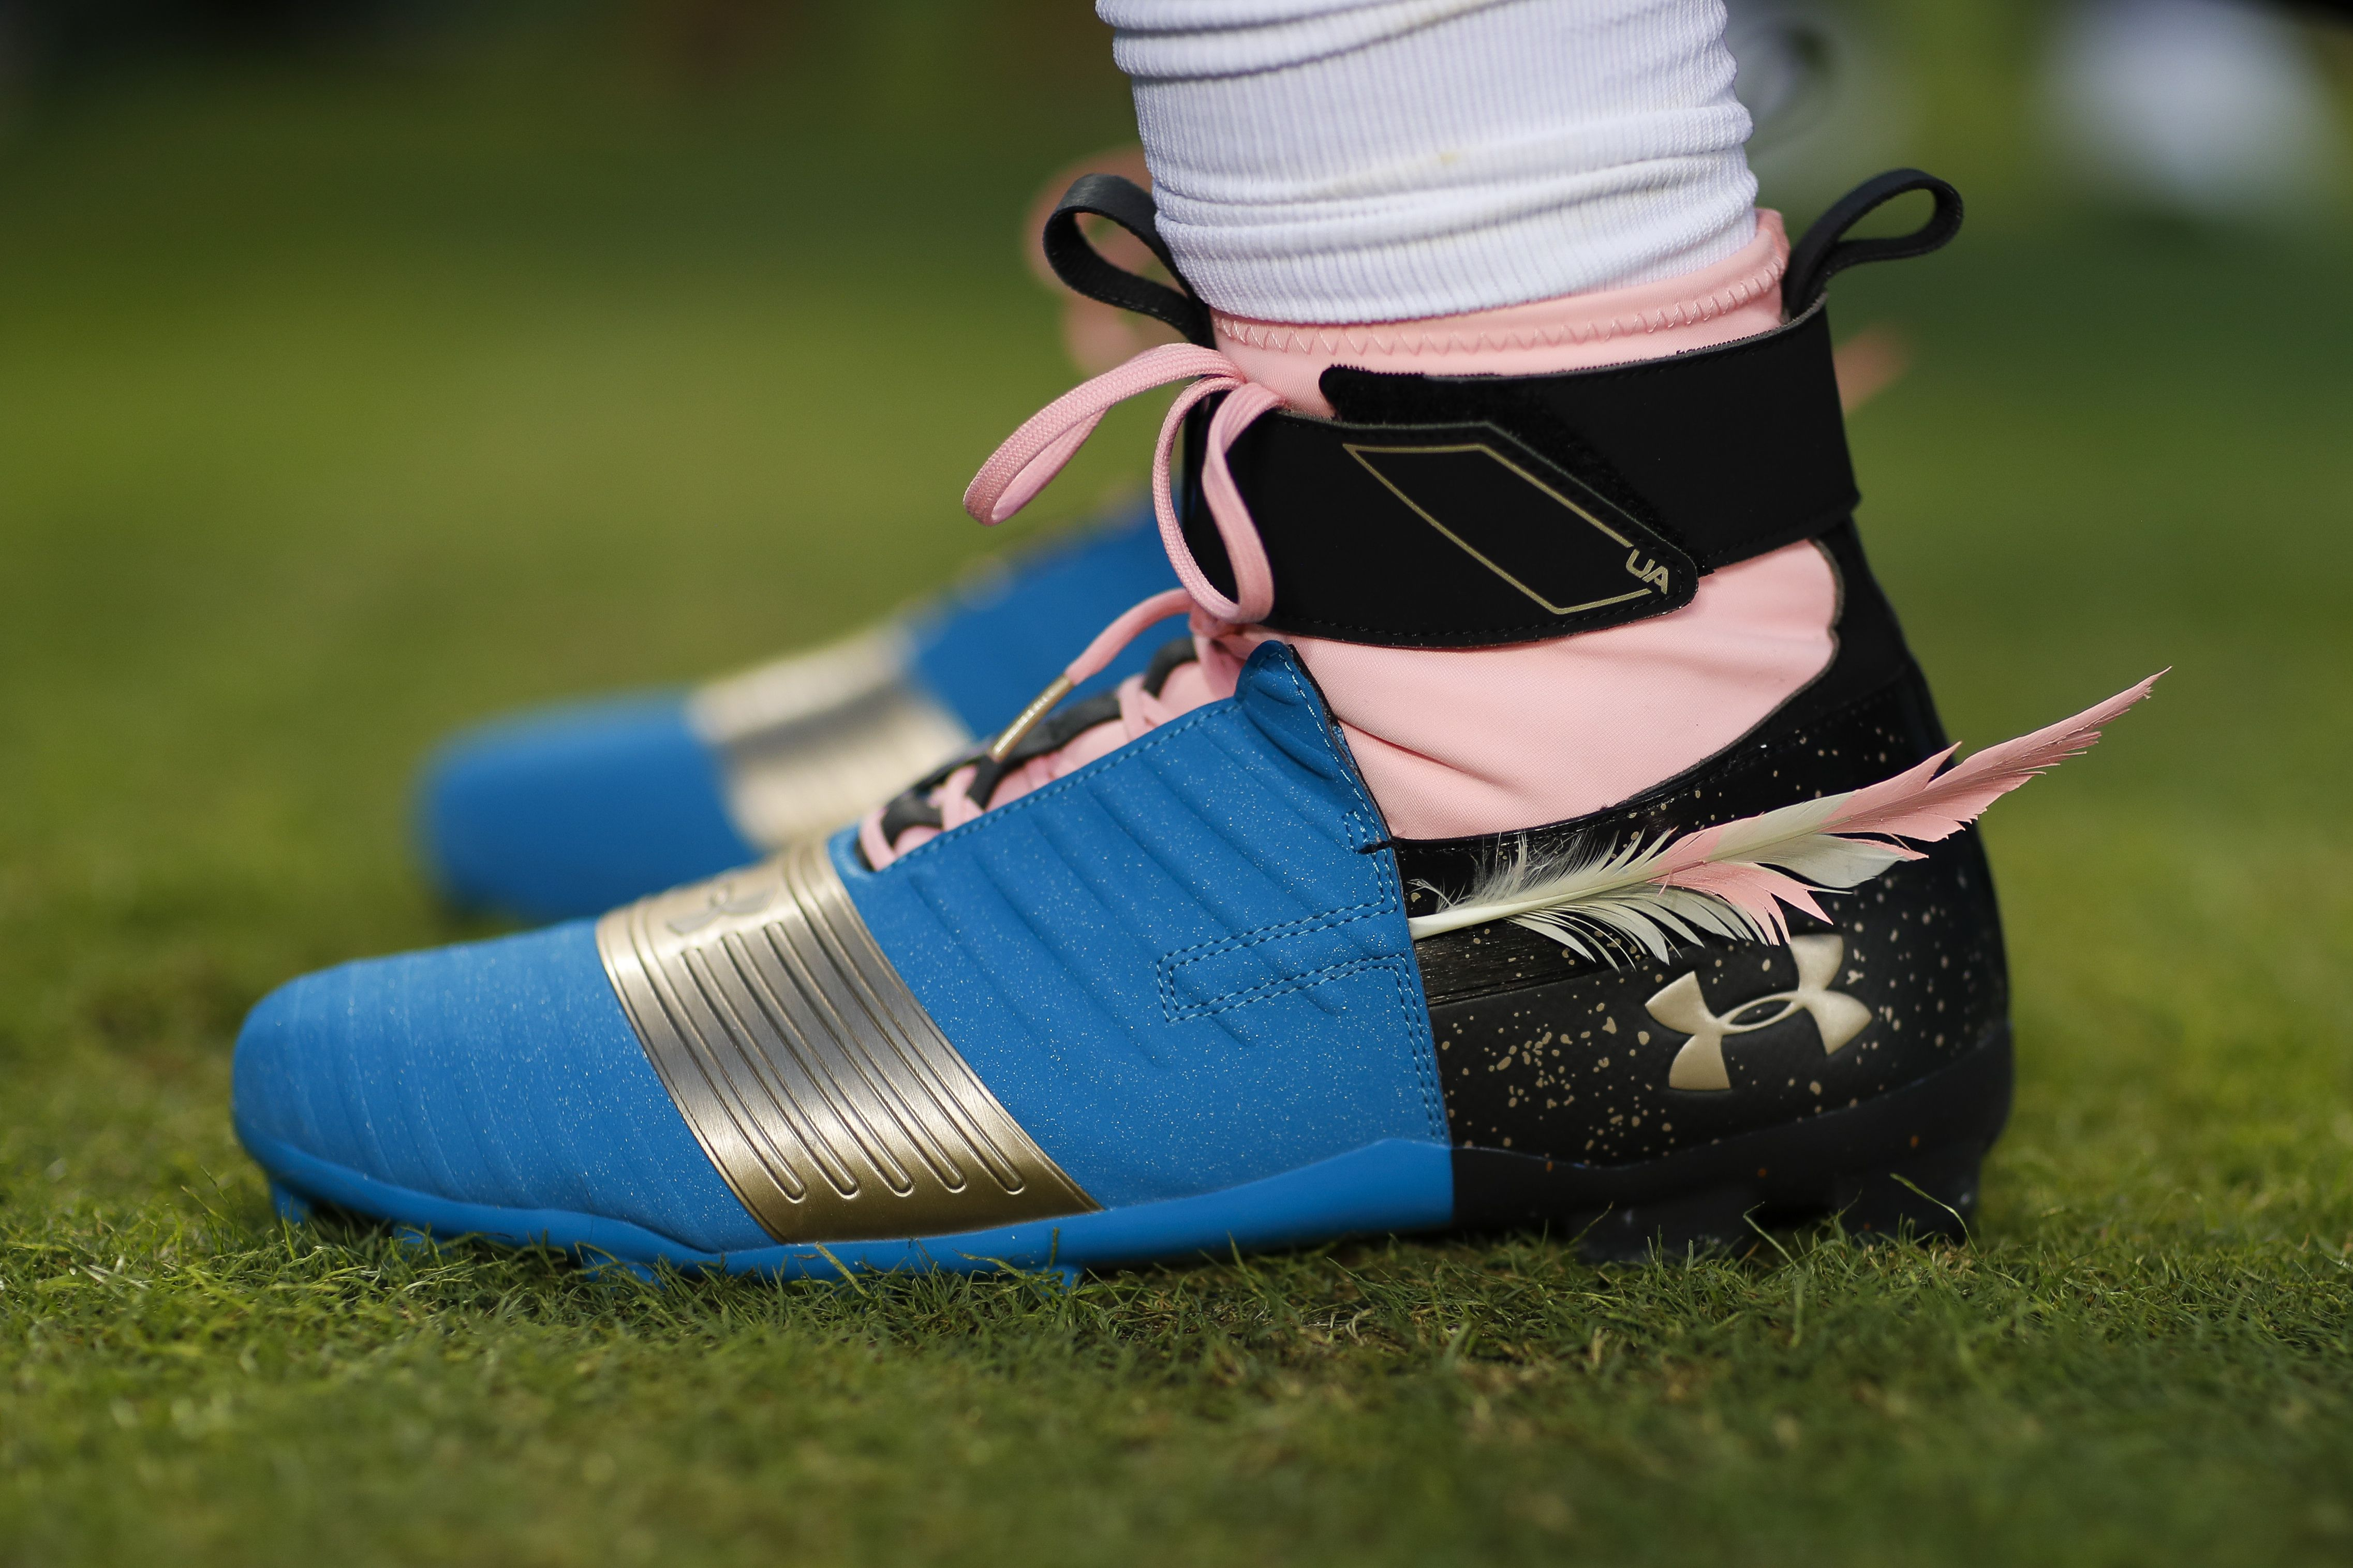 Forget about caps, Panthers QB Cam Newton starts a new trend: putting  feathers in